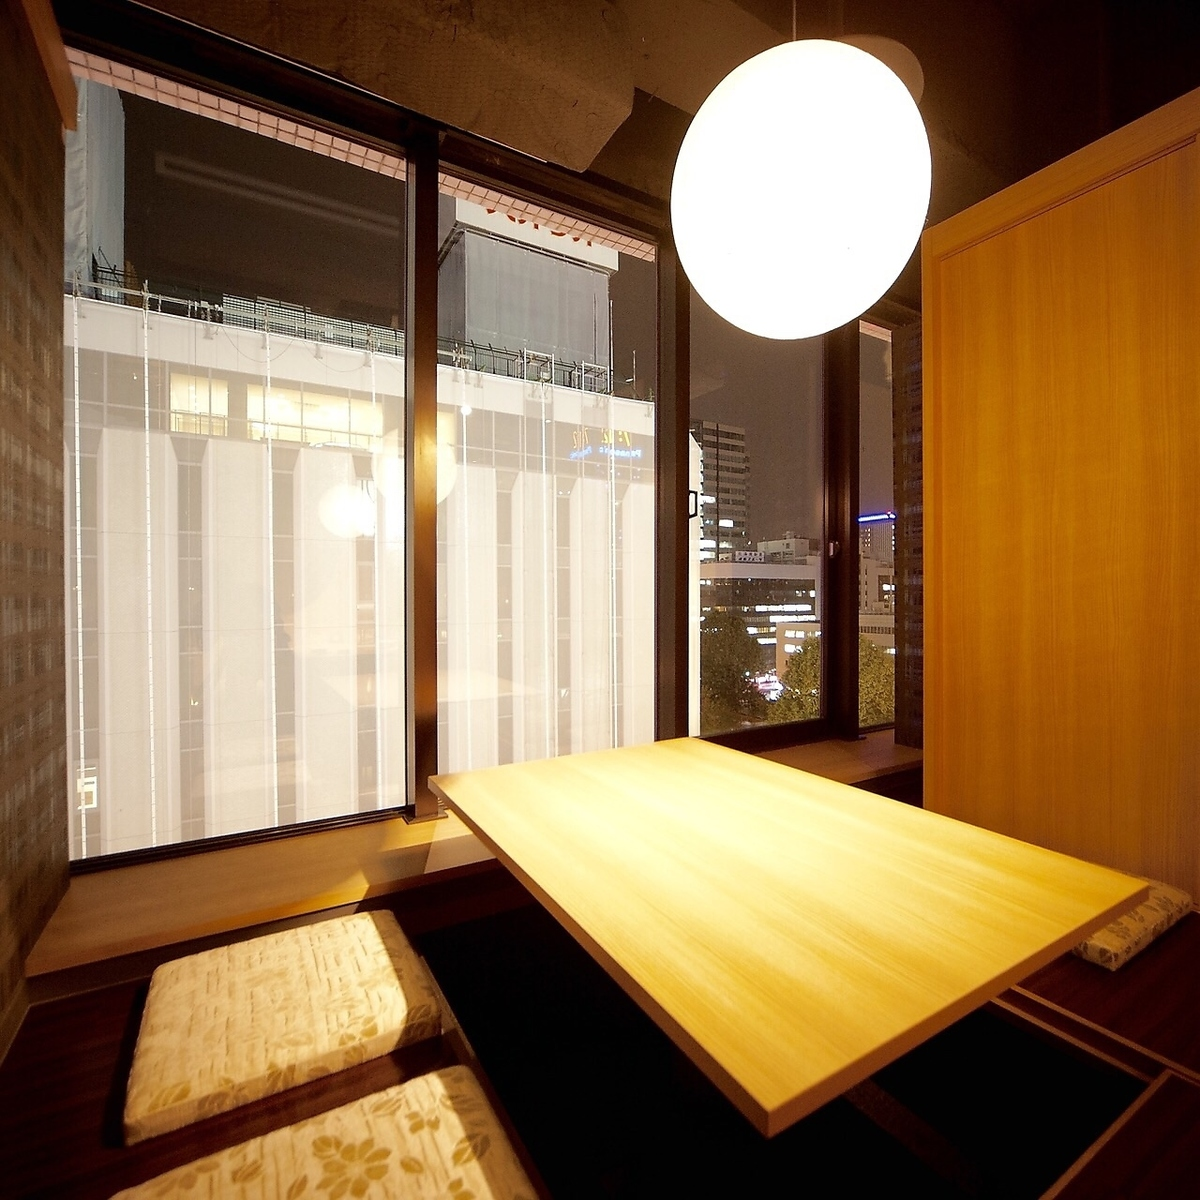 Private room but one side glassed and open feeling digging tatami private room / 2 - 8 people